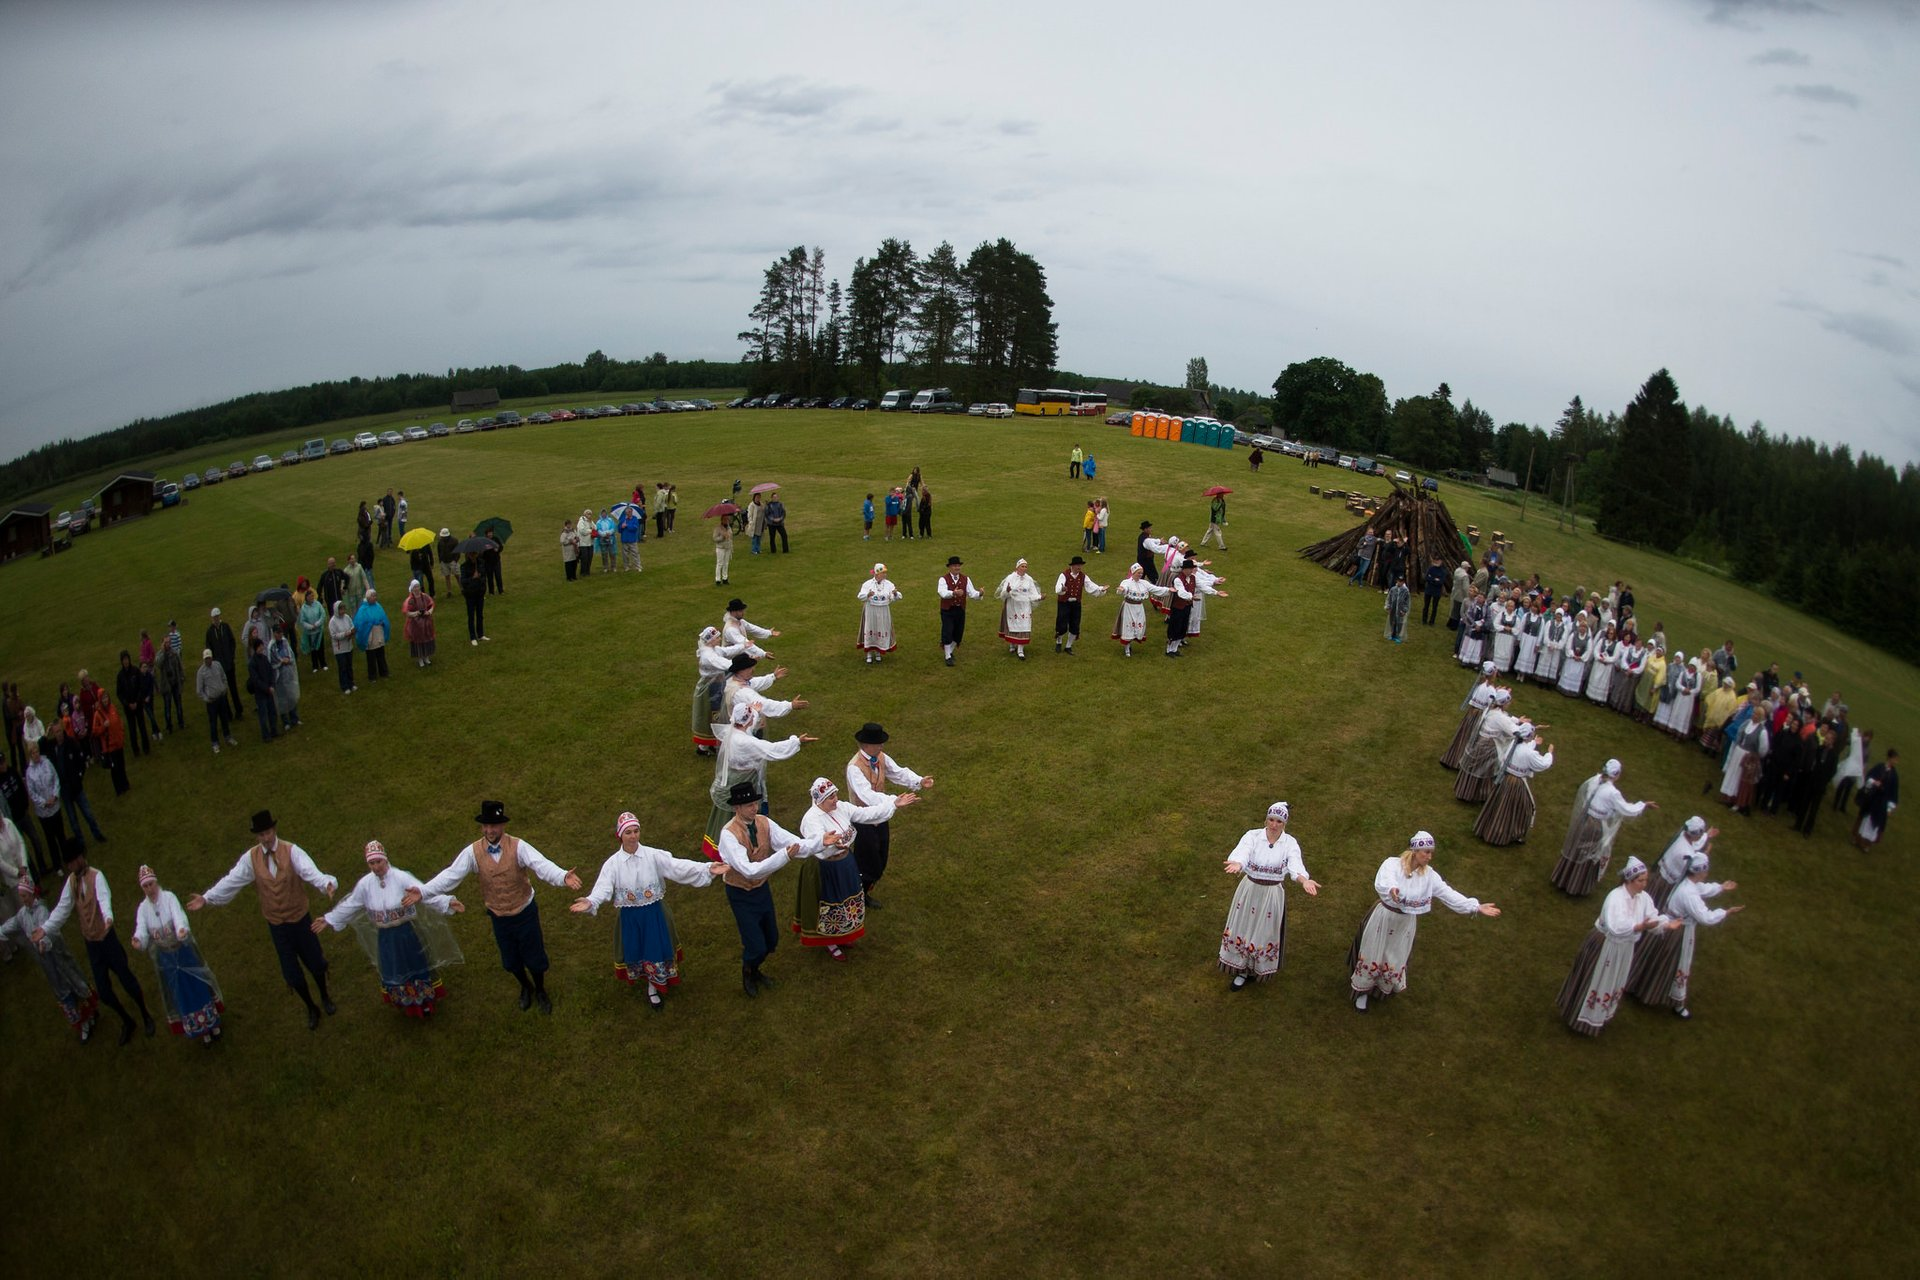 Best time to see Massive Song and Dance Celebration (Laulupidu) in Estonia 2019